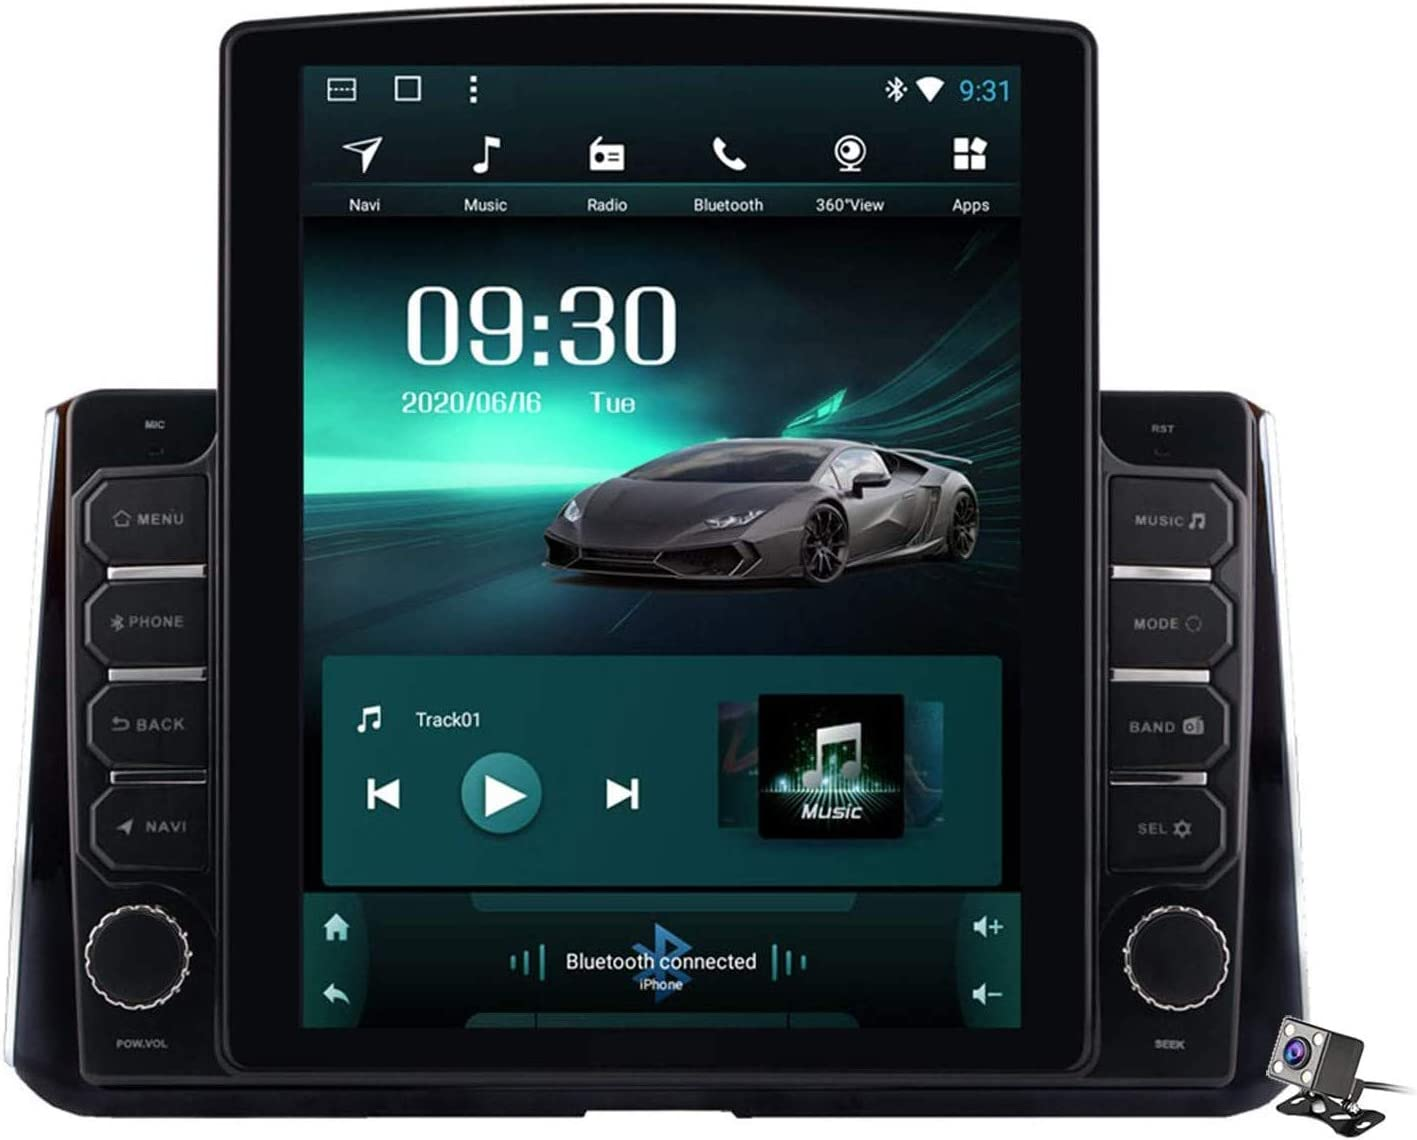 XBRMMM Pantalla Vertical 9.7 Pulgadas 2 DIN Android 9.1 Estéreo para Automóvil para Toyota Corolla 2019-2020 Radio con Navegación GPS Integrado DSP FM Am Soporte Bluetooth/SWC/MirrorLink